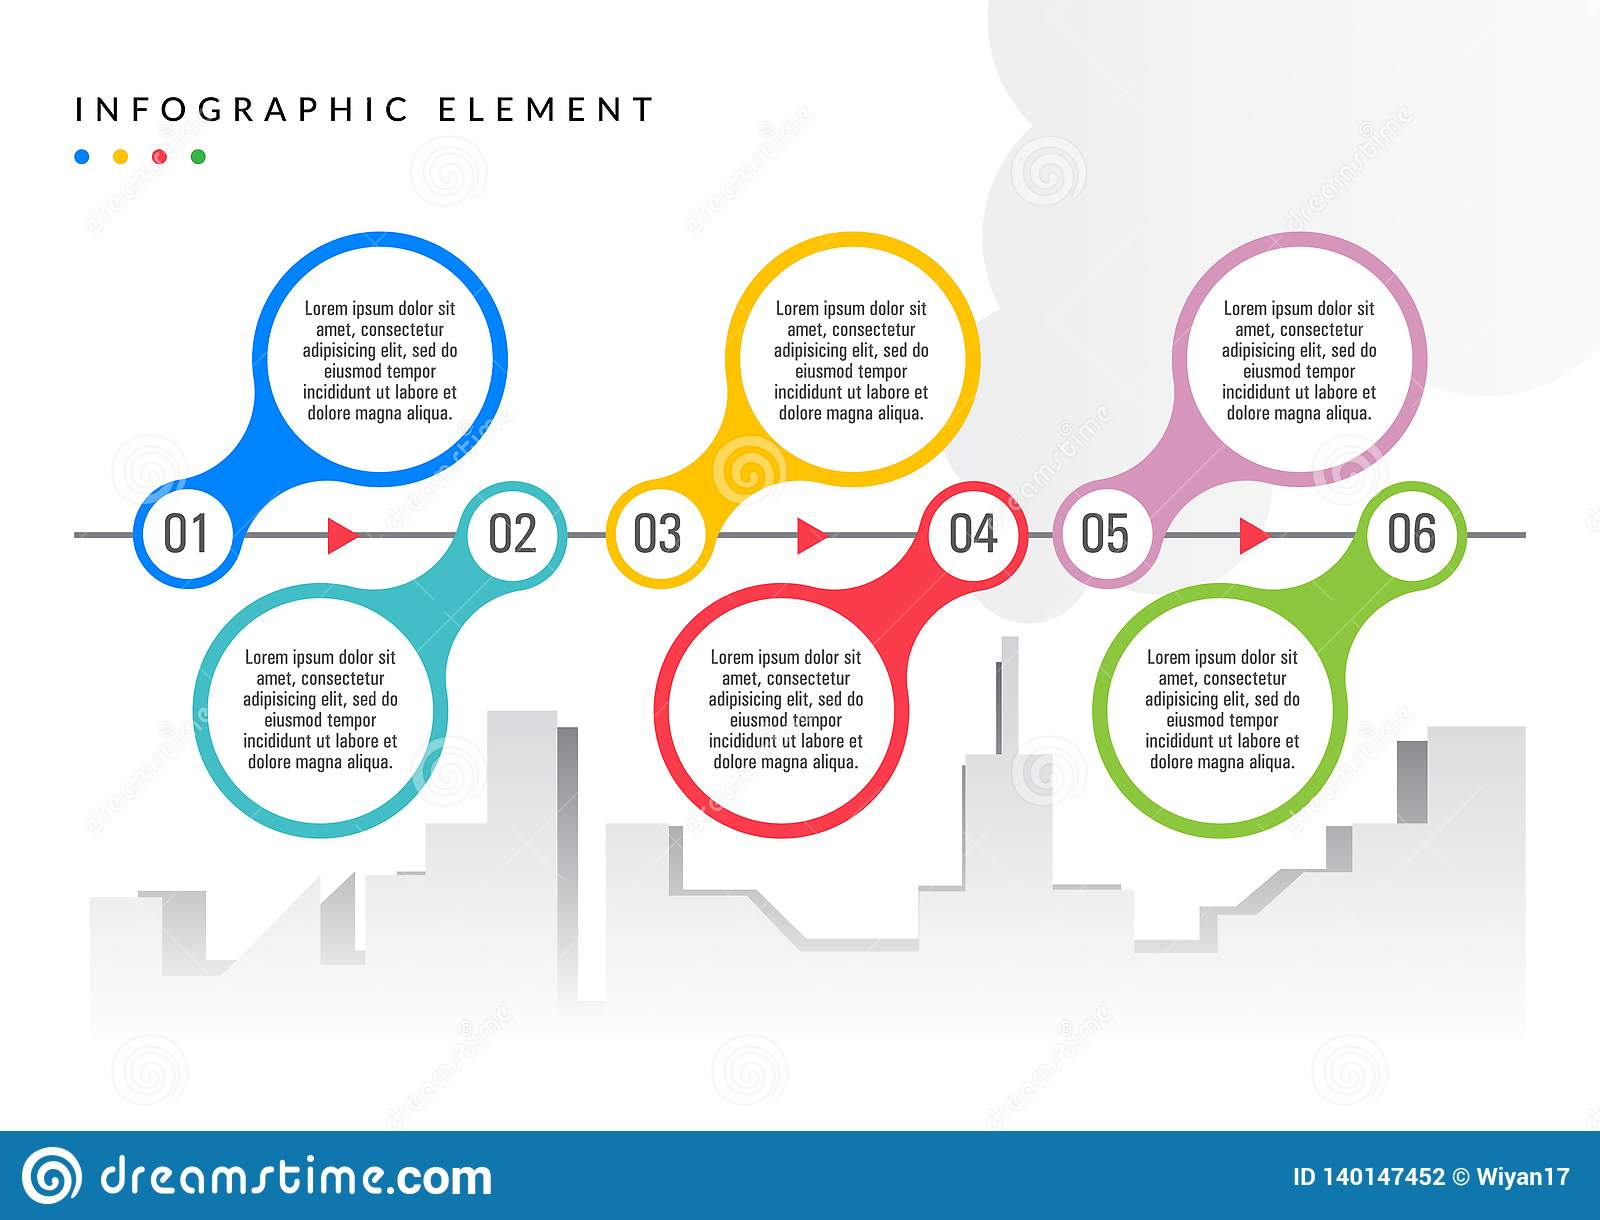 Einfache flache Farbe Infographic-Elements